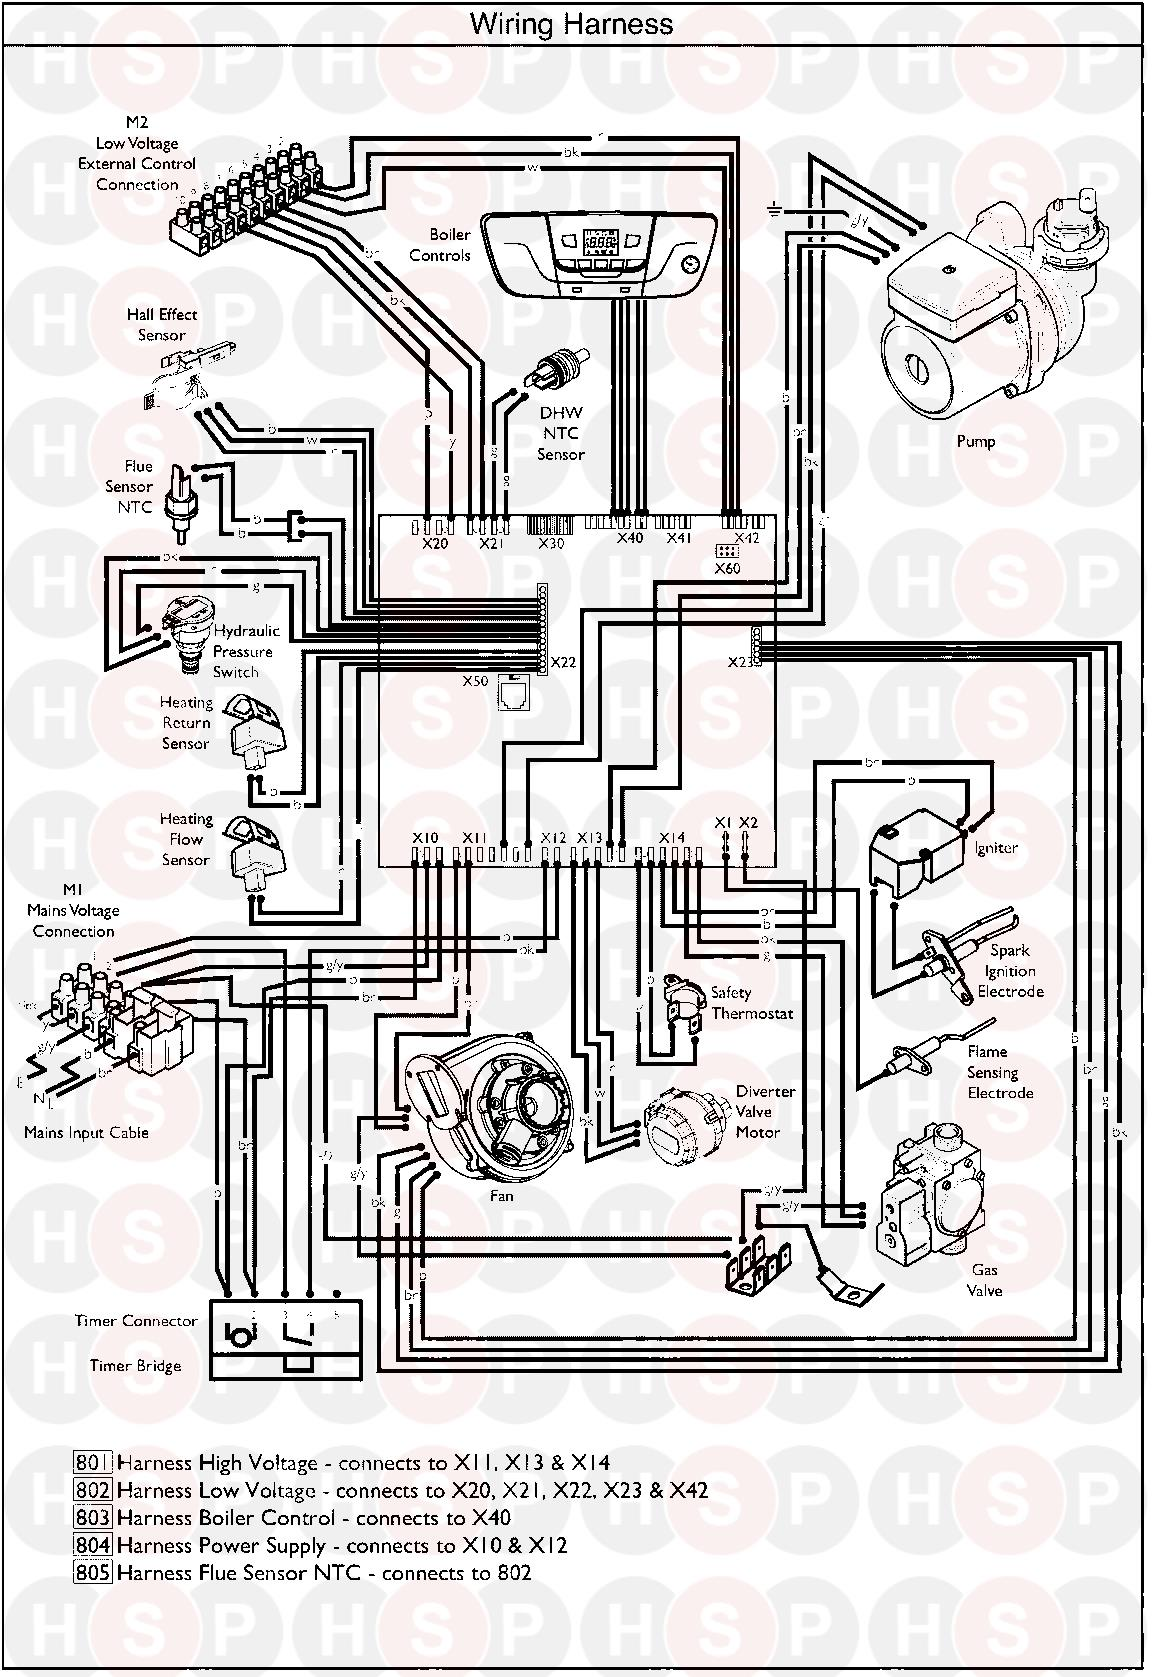 Baxi Plus Combi 28 Wiring Harness Diagram Heating Spare Parts X12 Click The To Open It On A New Page